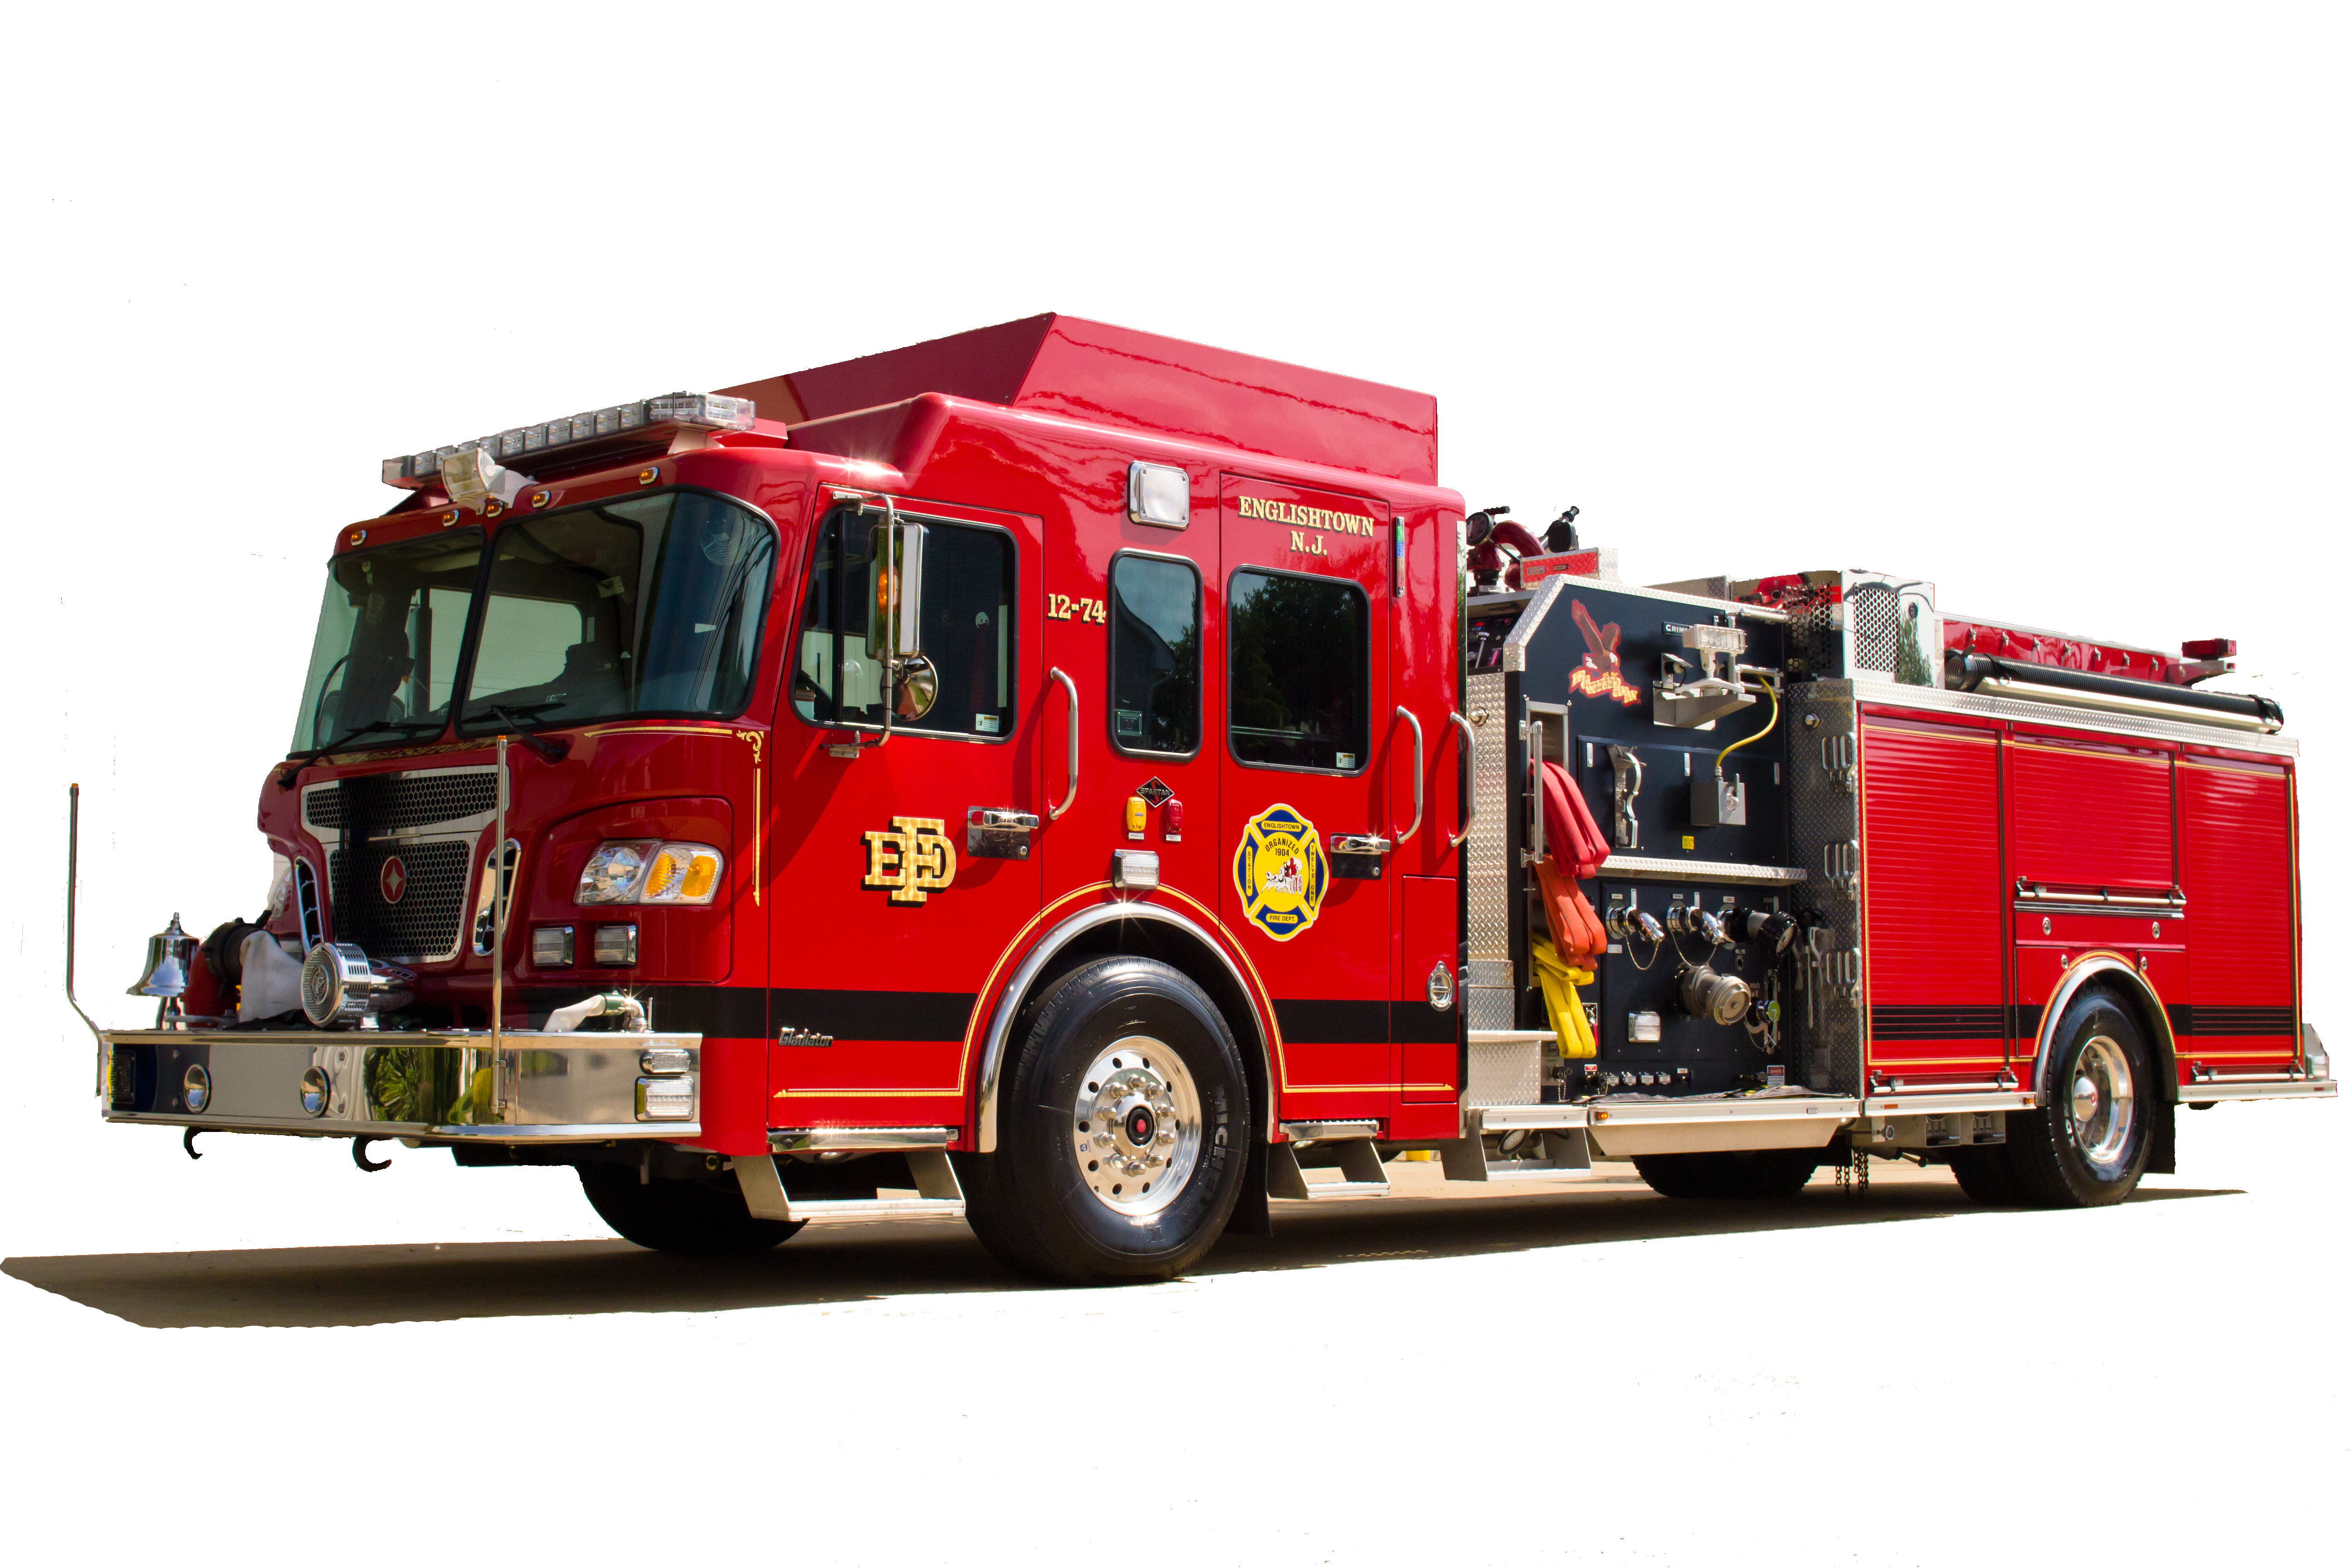 Fire truck PNG images free download, fire engine PNG.